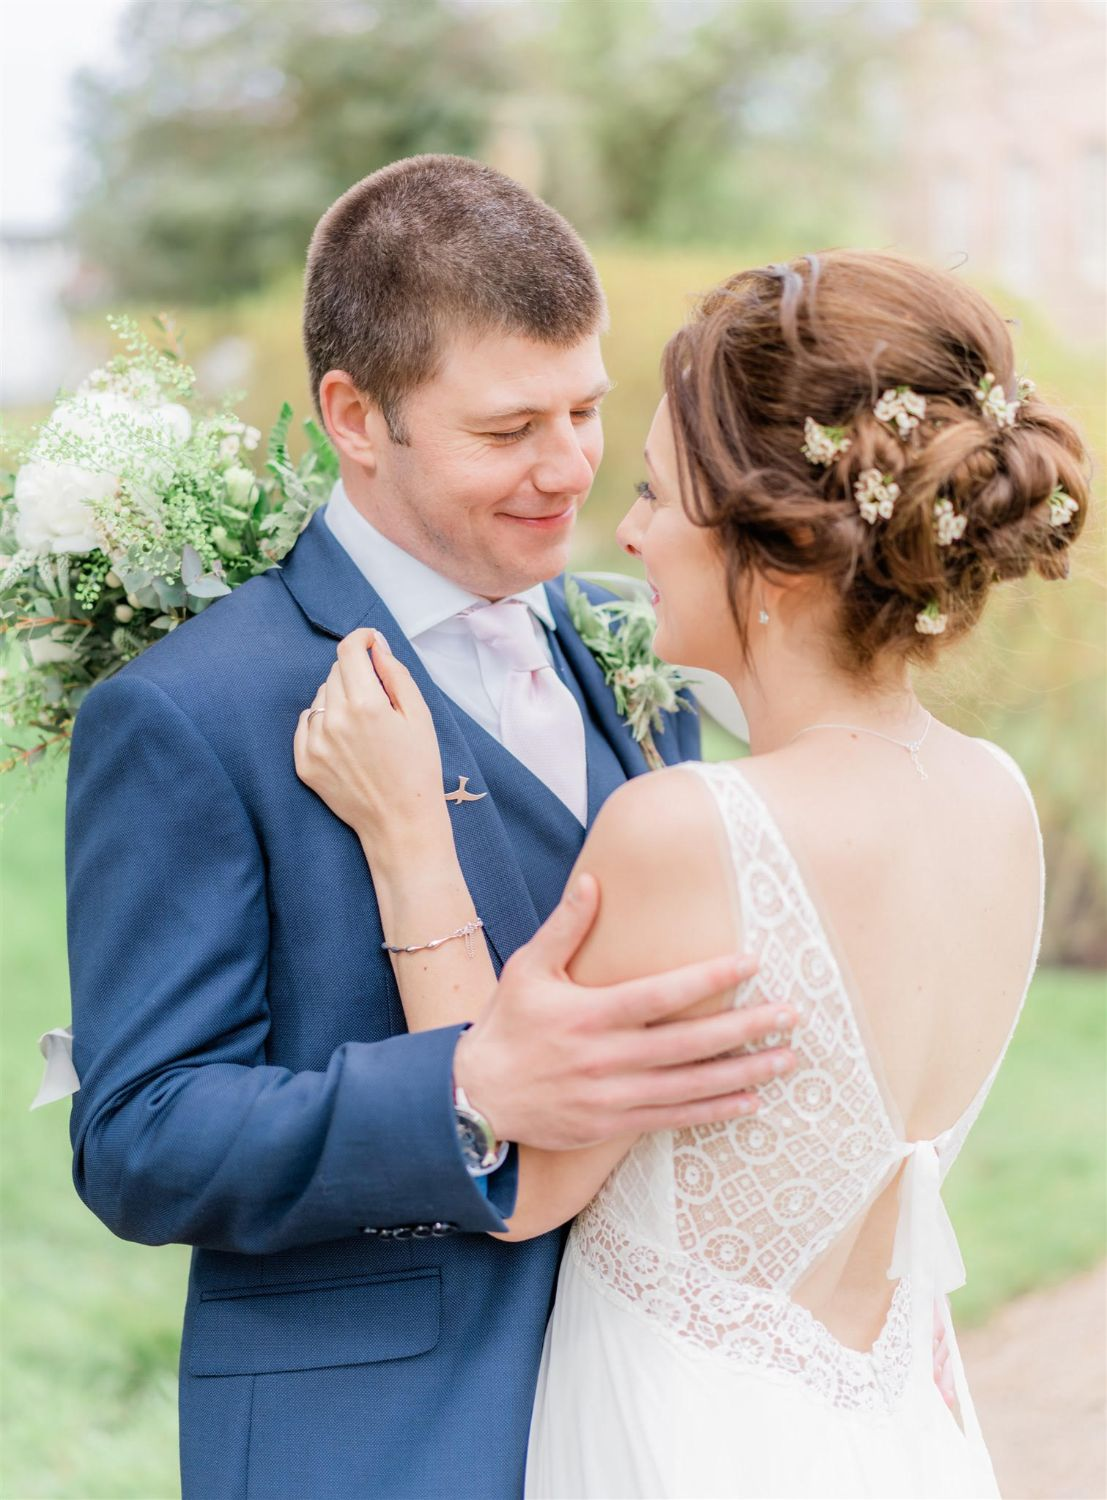 Real-Brides-Nottingham-Rembo-Styling-Graal-13